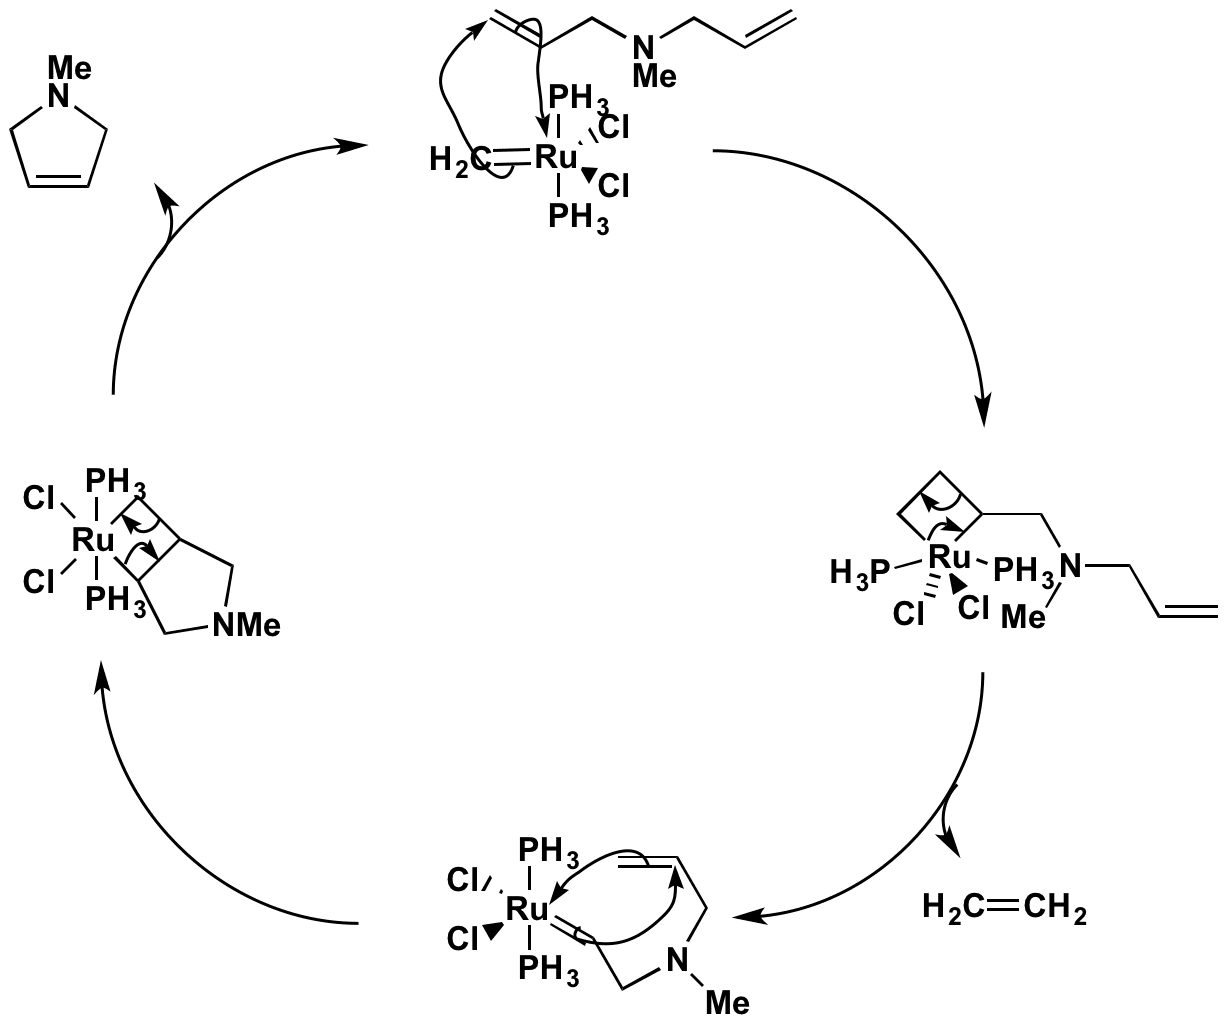 mechanism of olefin metathesis reaction It became obvious at that meeting that the mechanism of the metathesis reaction would e alkene and alkyne metathesis reactions of olefin metathesis.